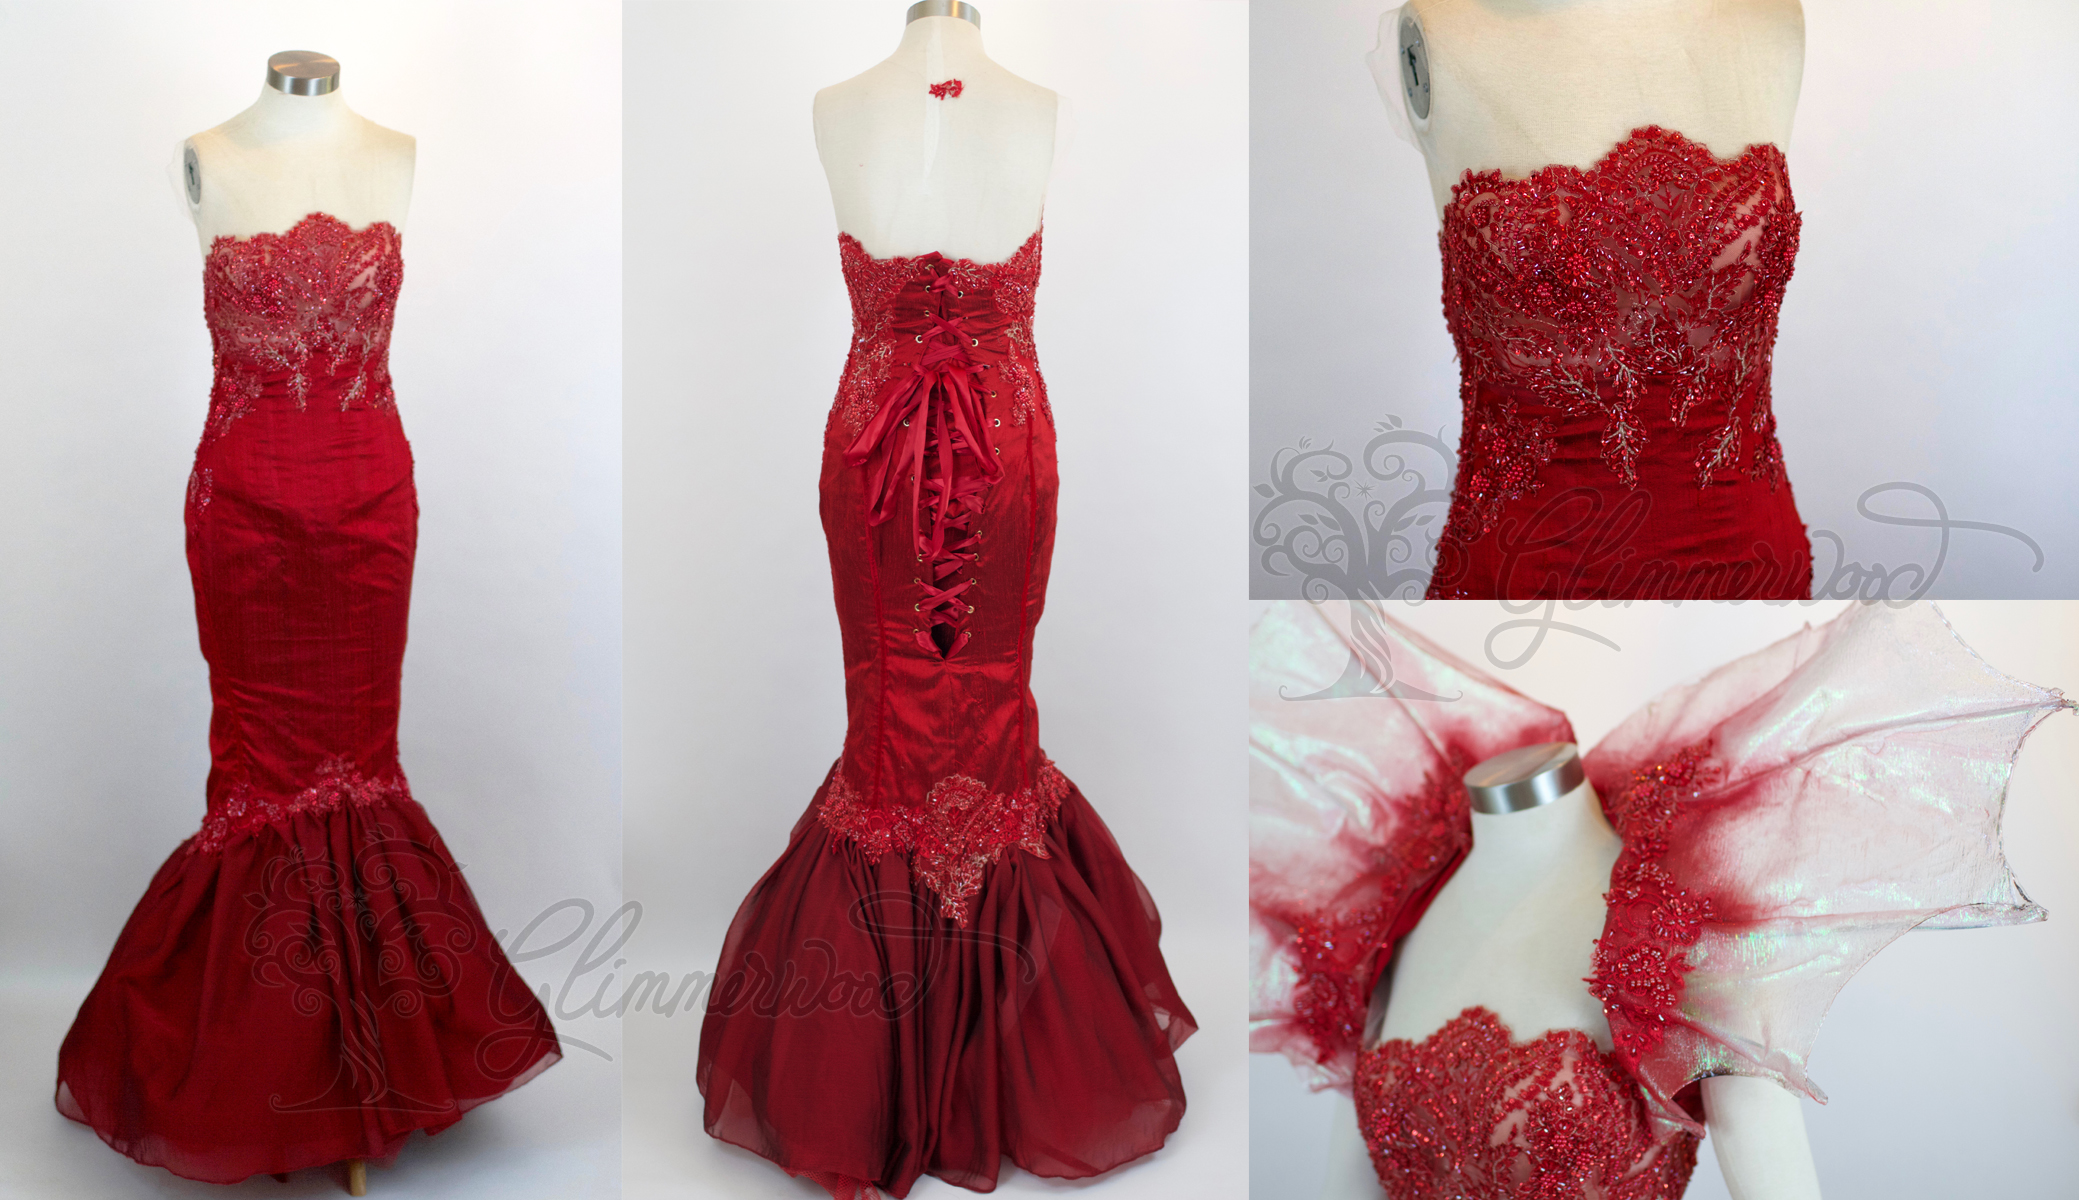 Red Mermaid Gown and Collar